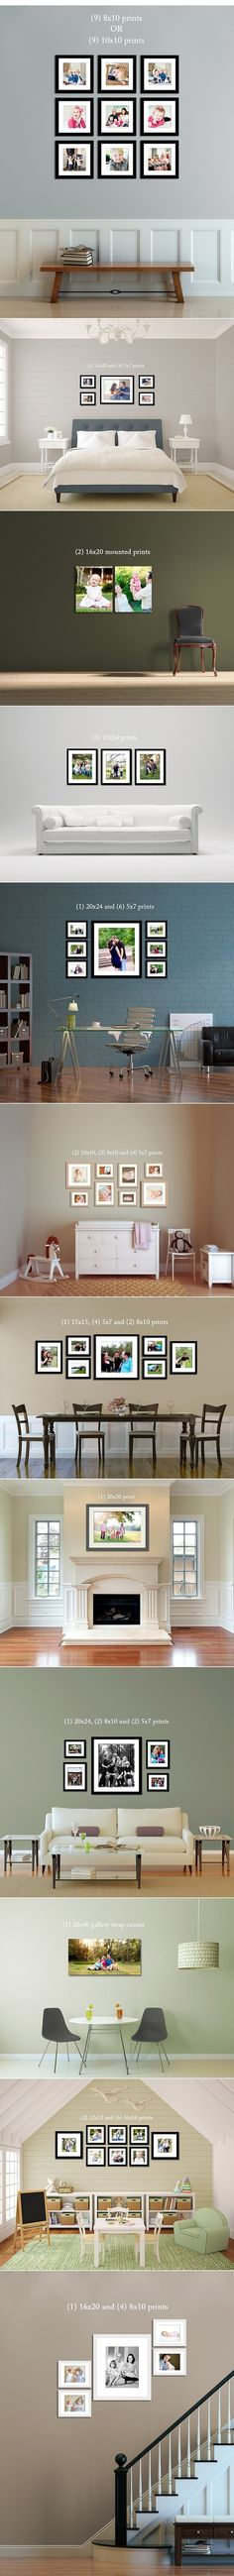 Picture hanging ideas. Clean and organized. - My-House-My-Home